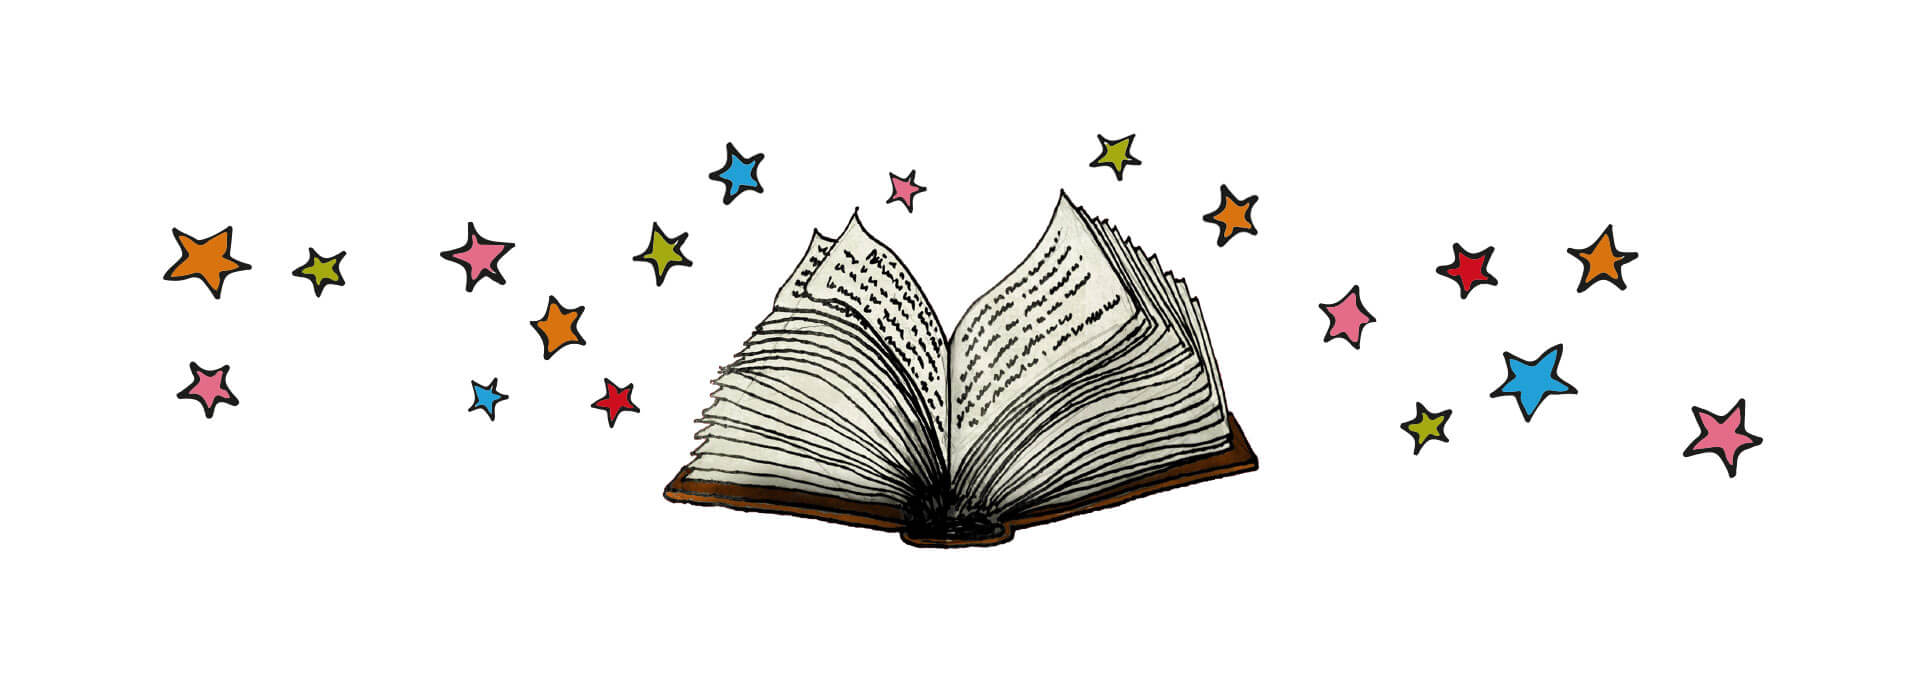 Illustration of storybook and multicoloured stars.